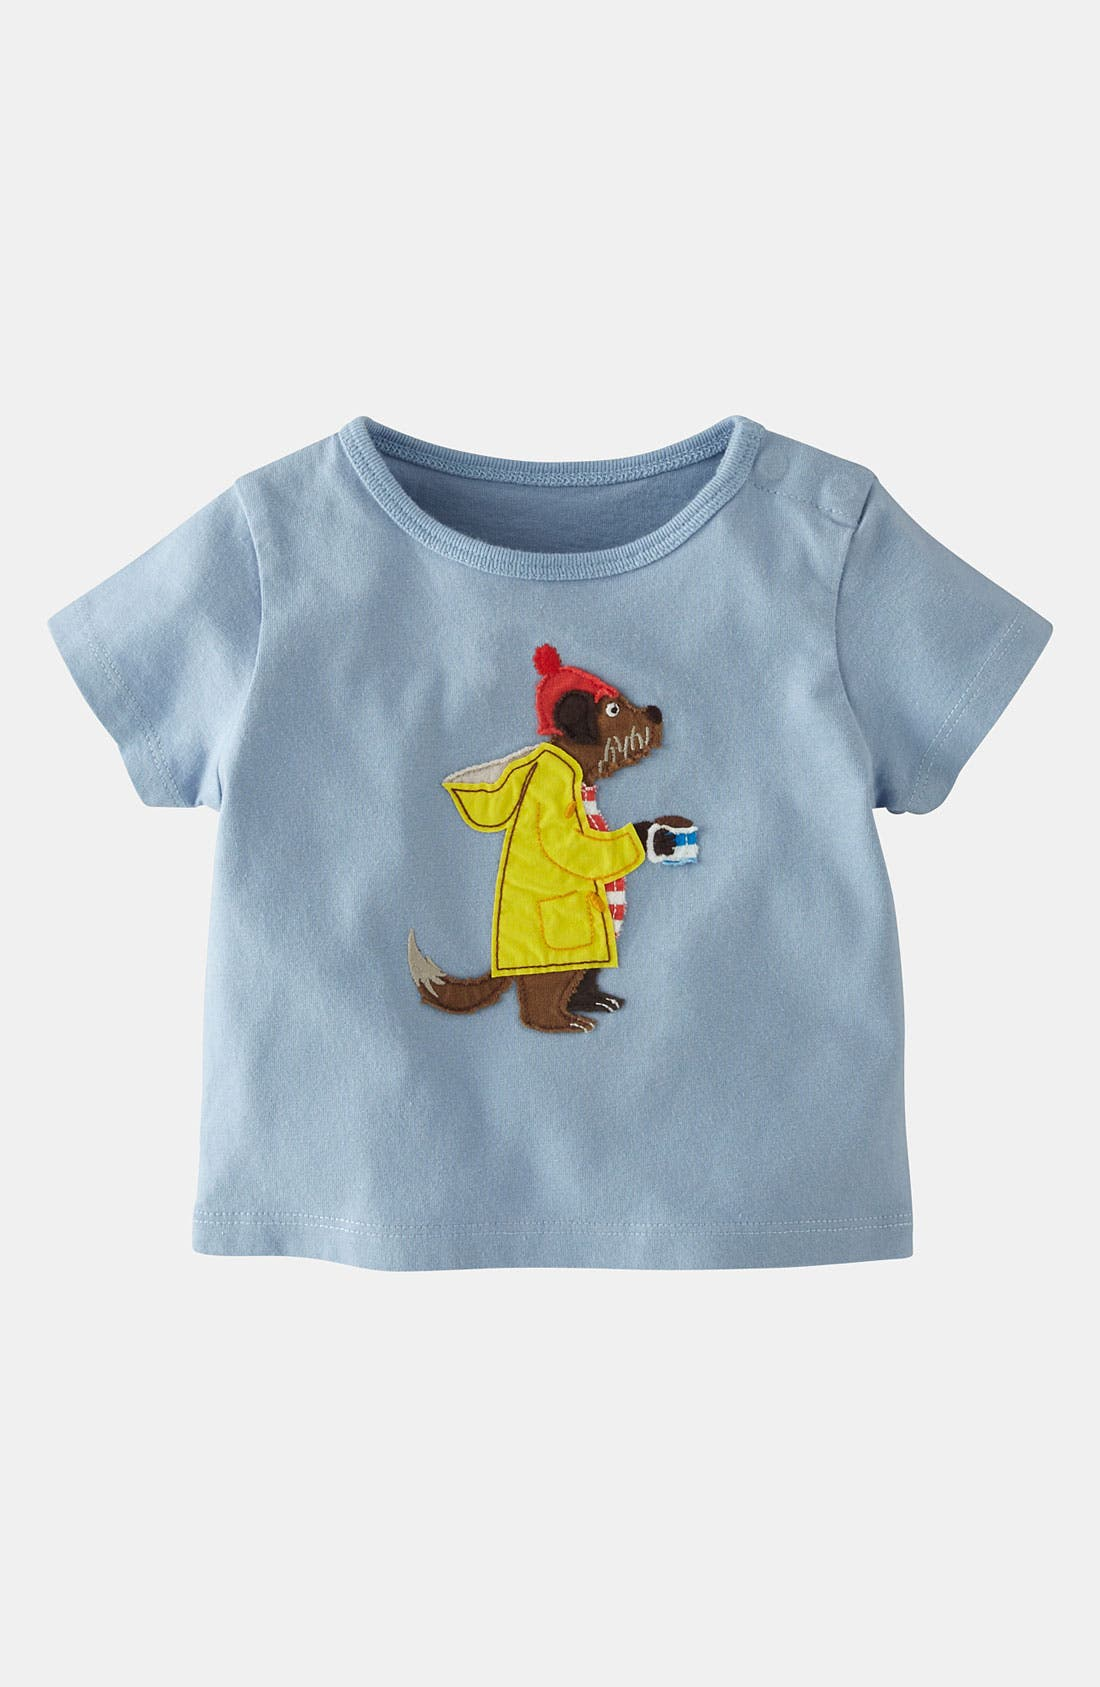 Main Image - Mini Boden 'Vintage Animals' T-Shirt (Baby)